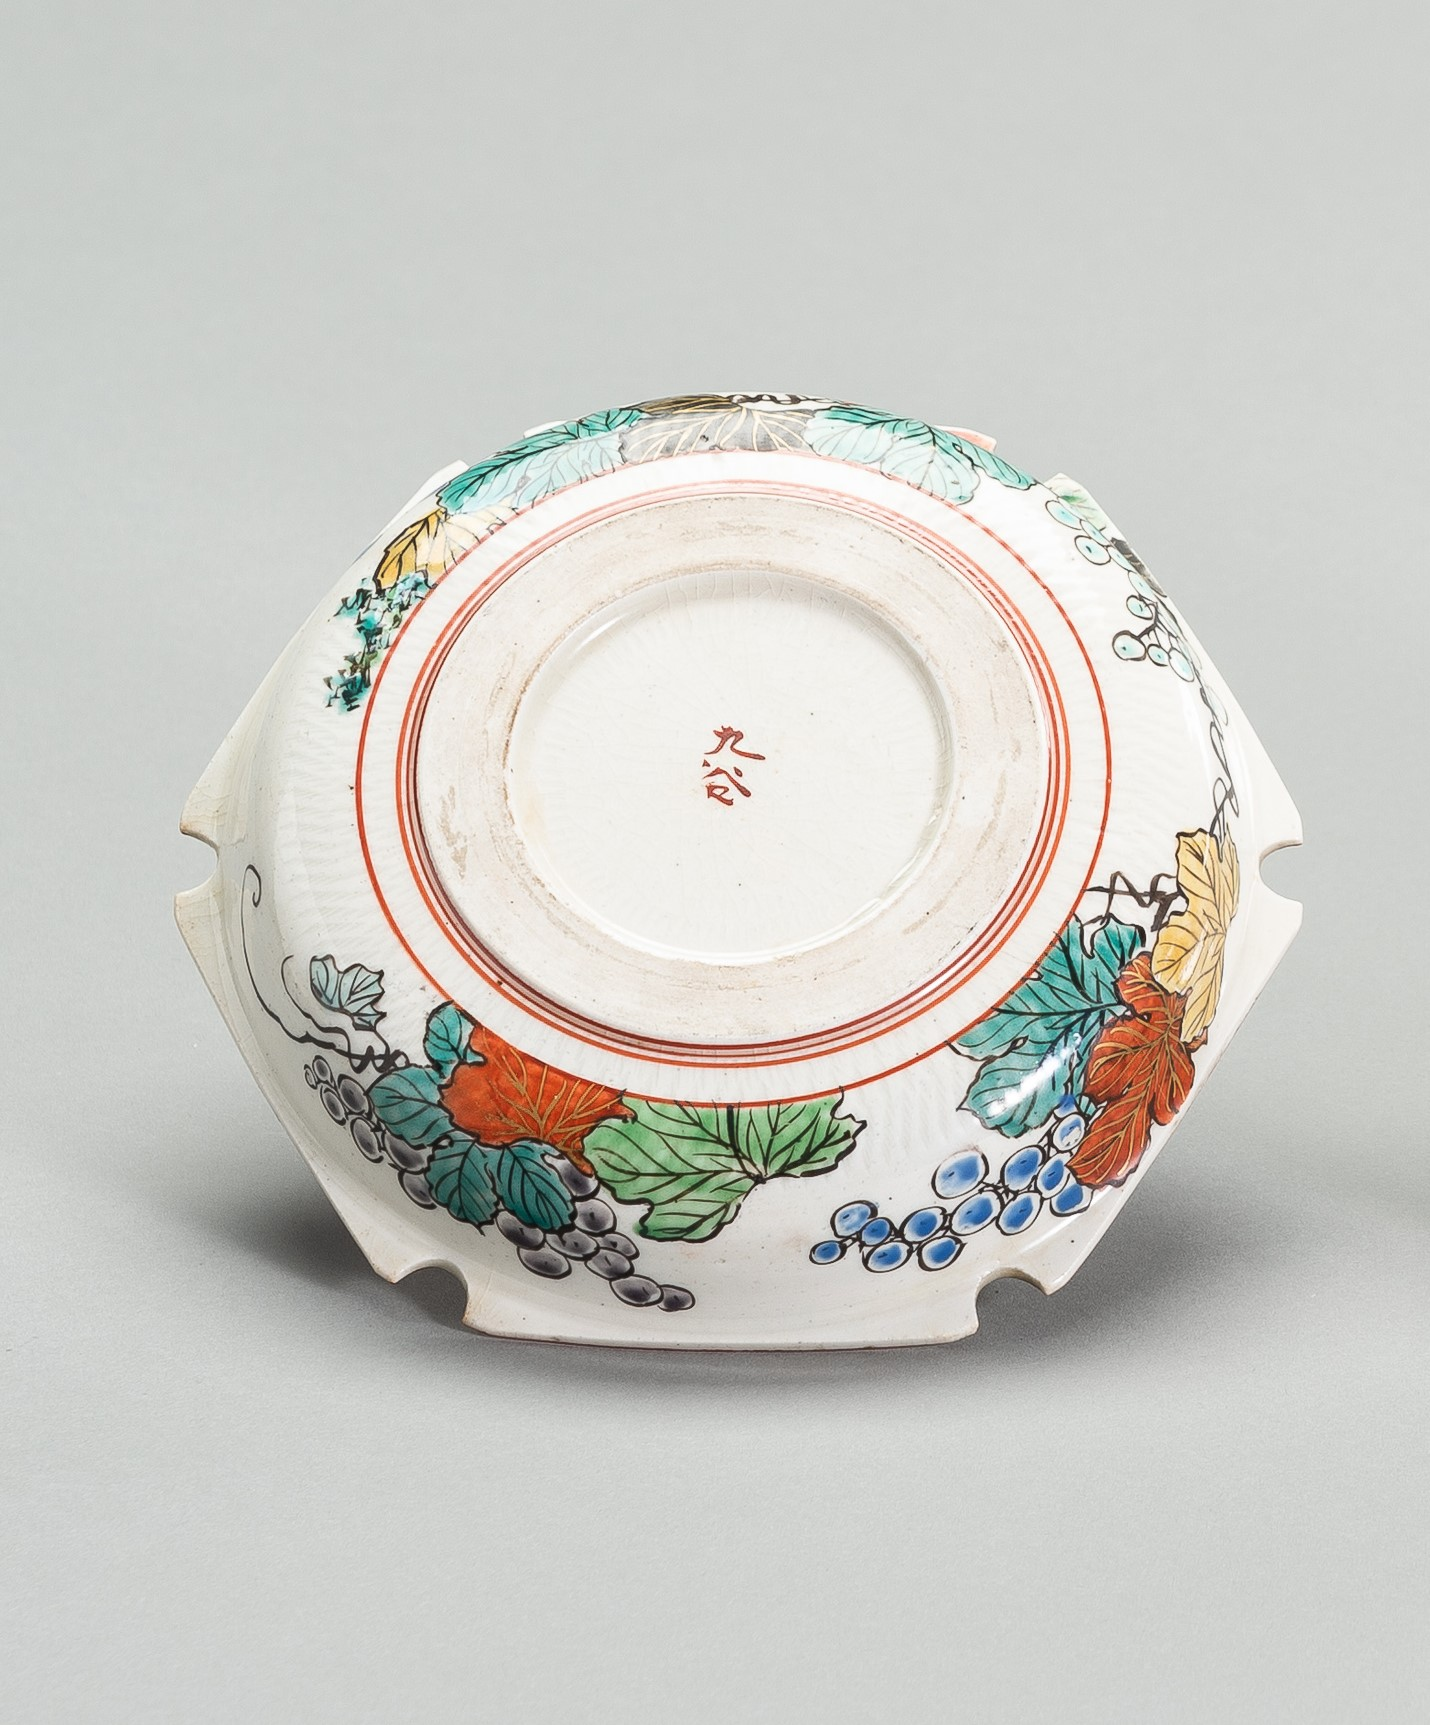 A POLYCHROME ENAMELED PORCLEAIN DISH - Image 3 of 5